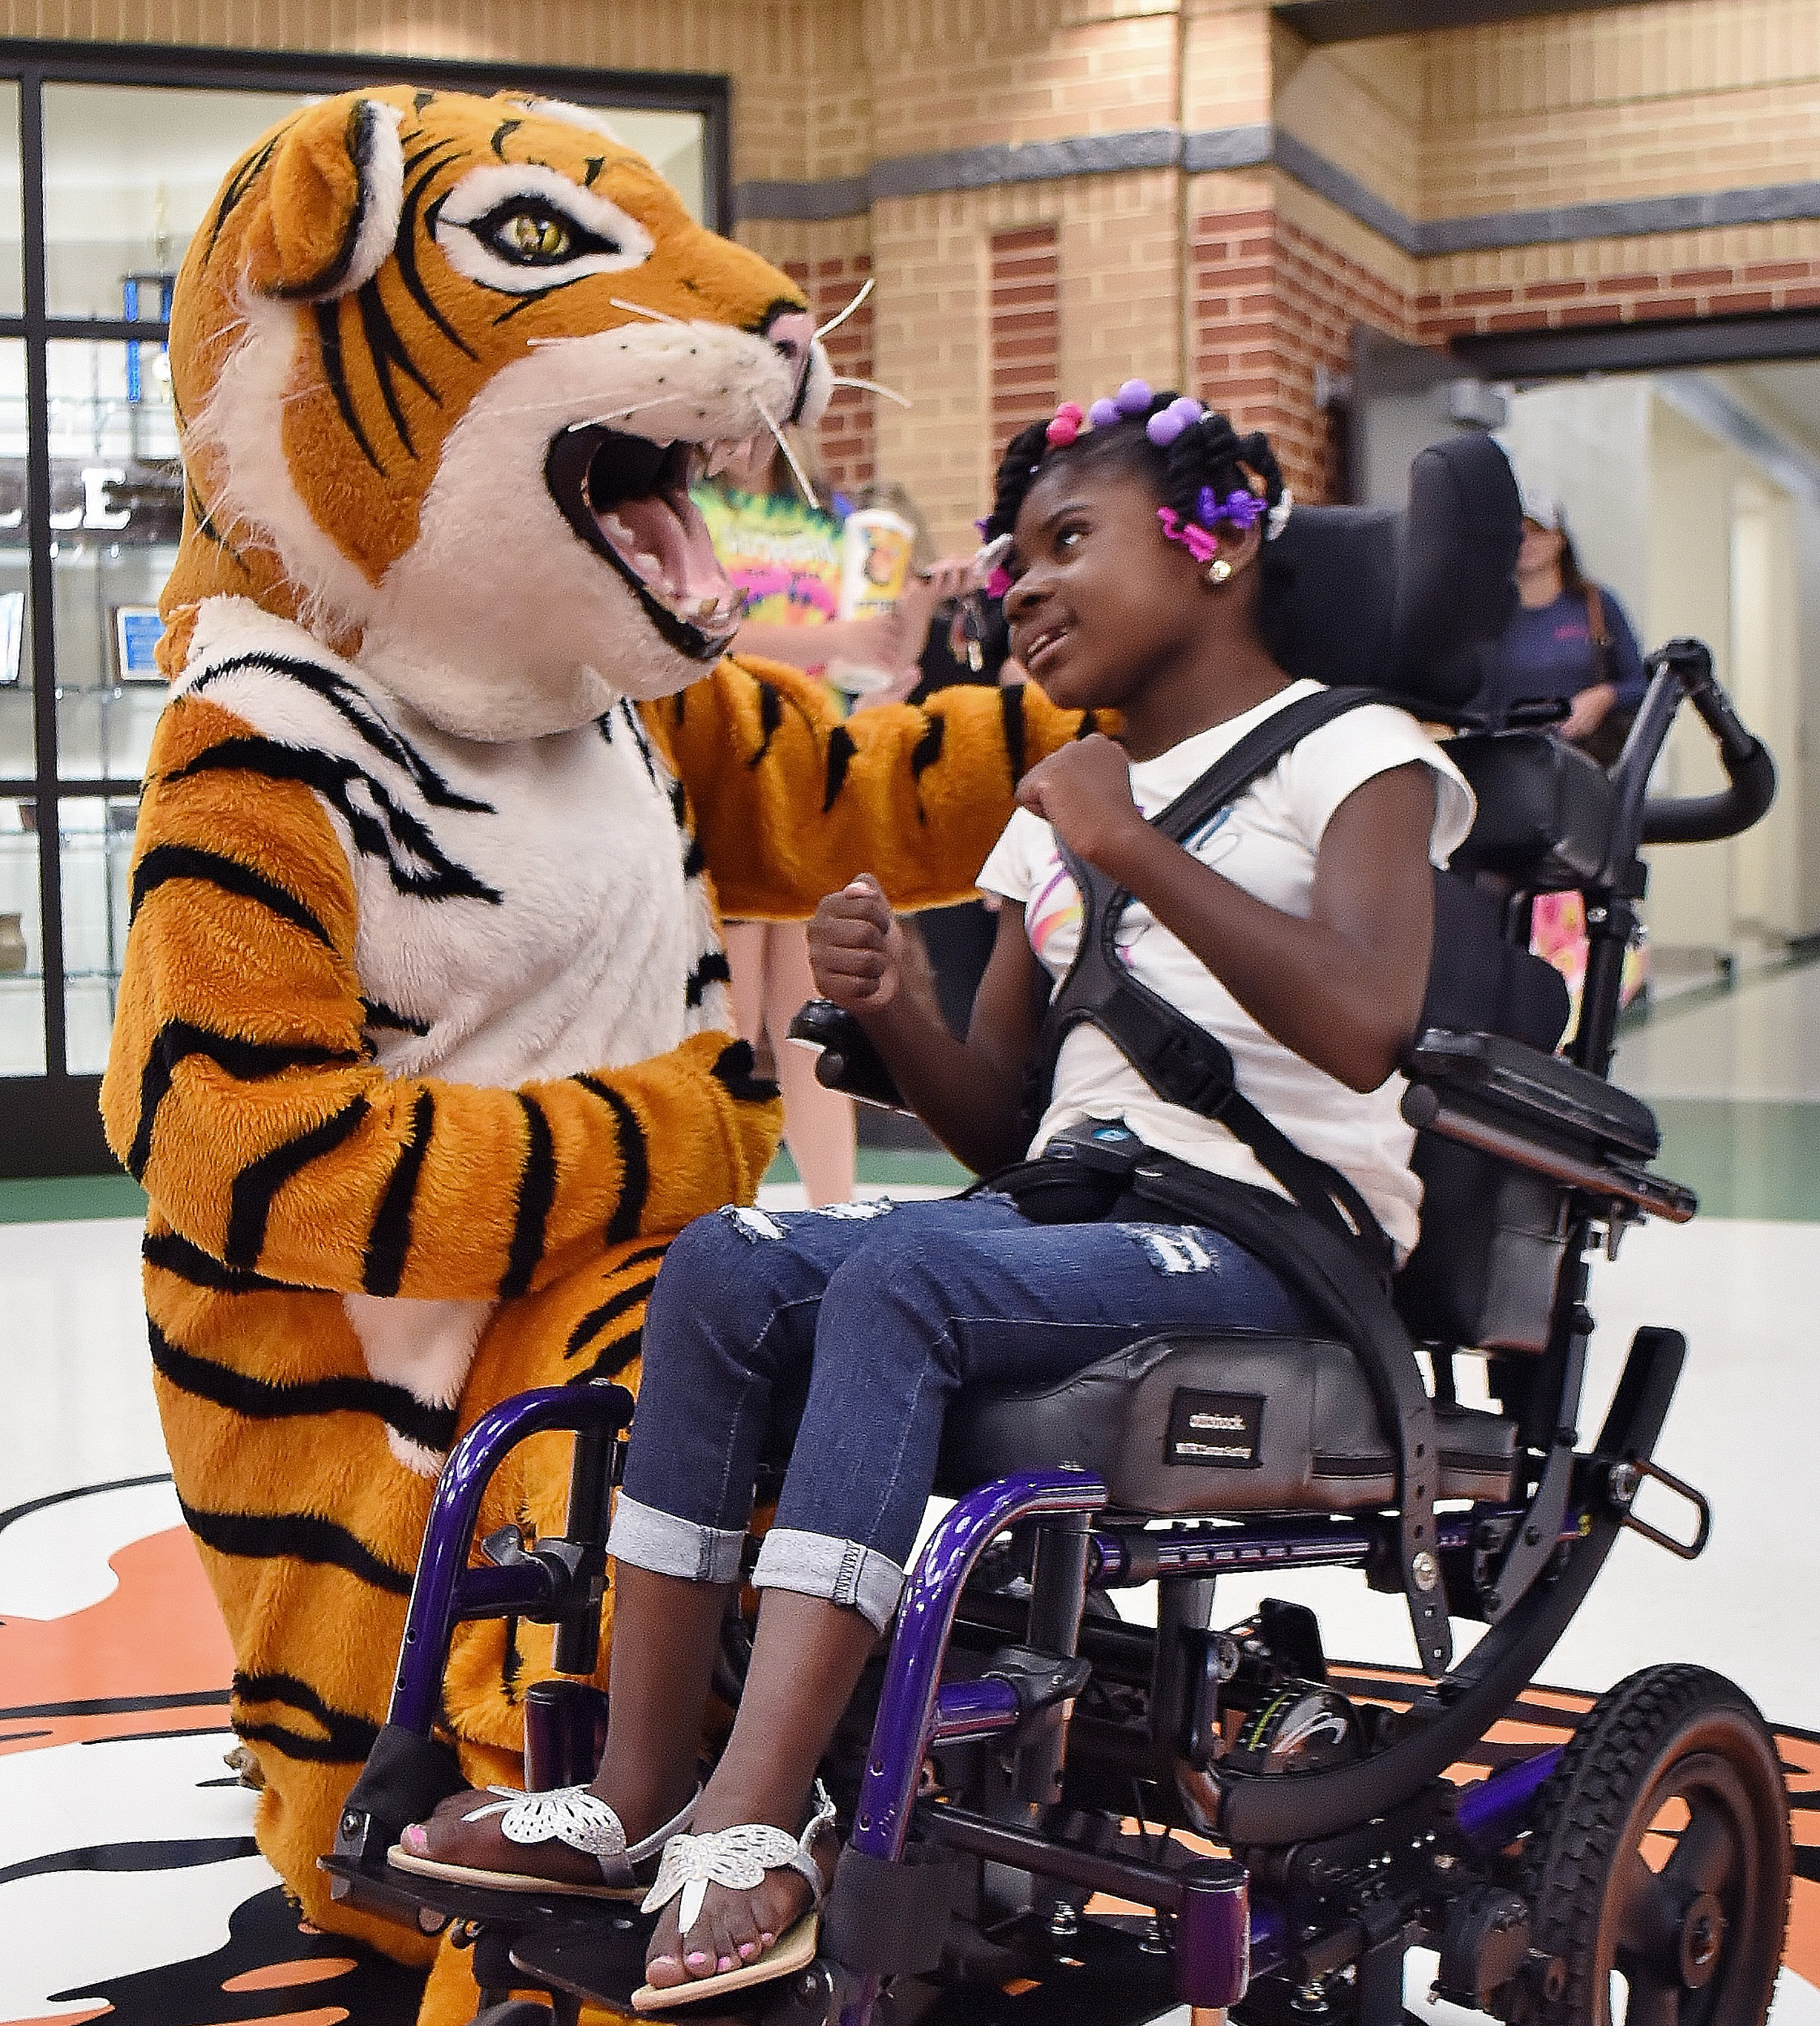 RANDY PARKER/THE DAILY TRIBUNE NEWS The Adairsville Elementary School tiger mascot greets Jazzy Watkins on her first day of school last week.